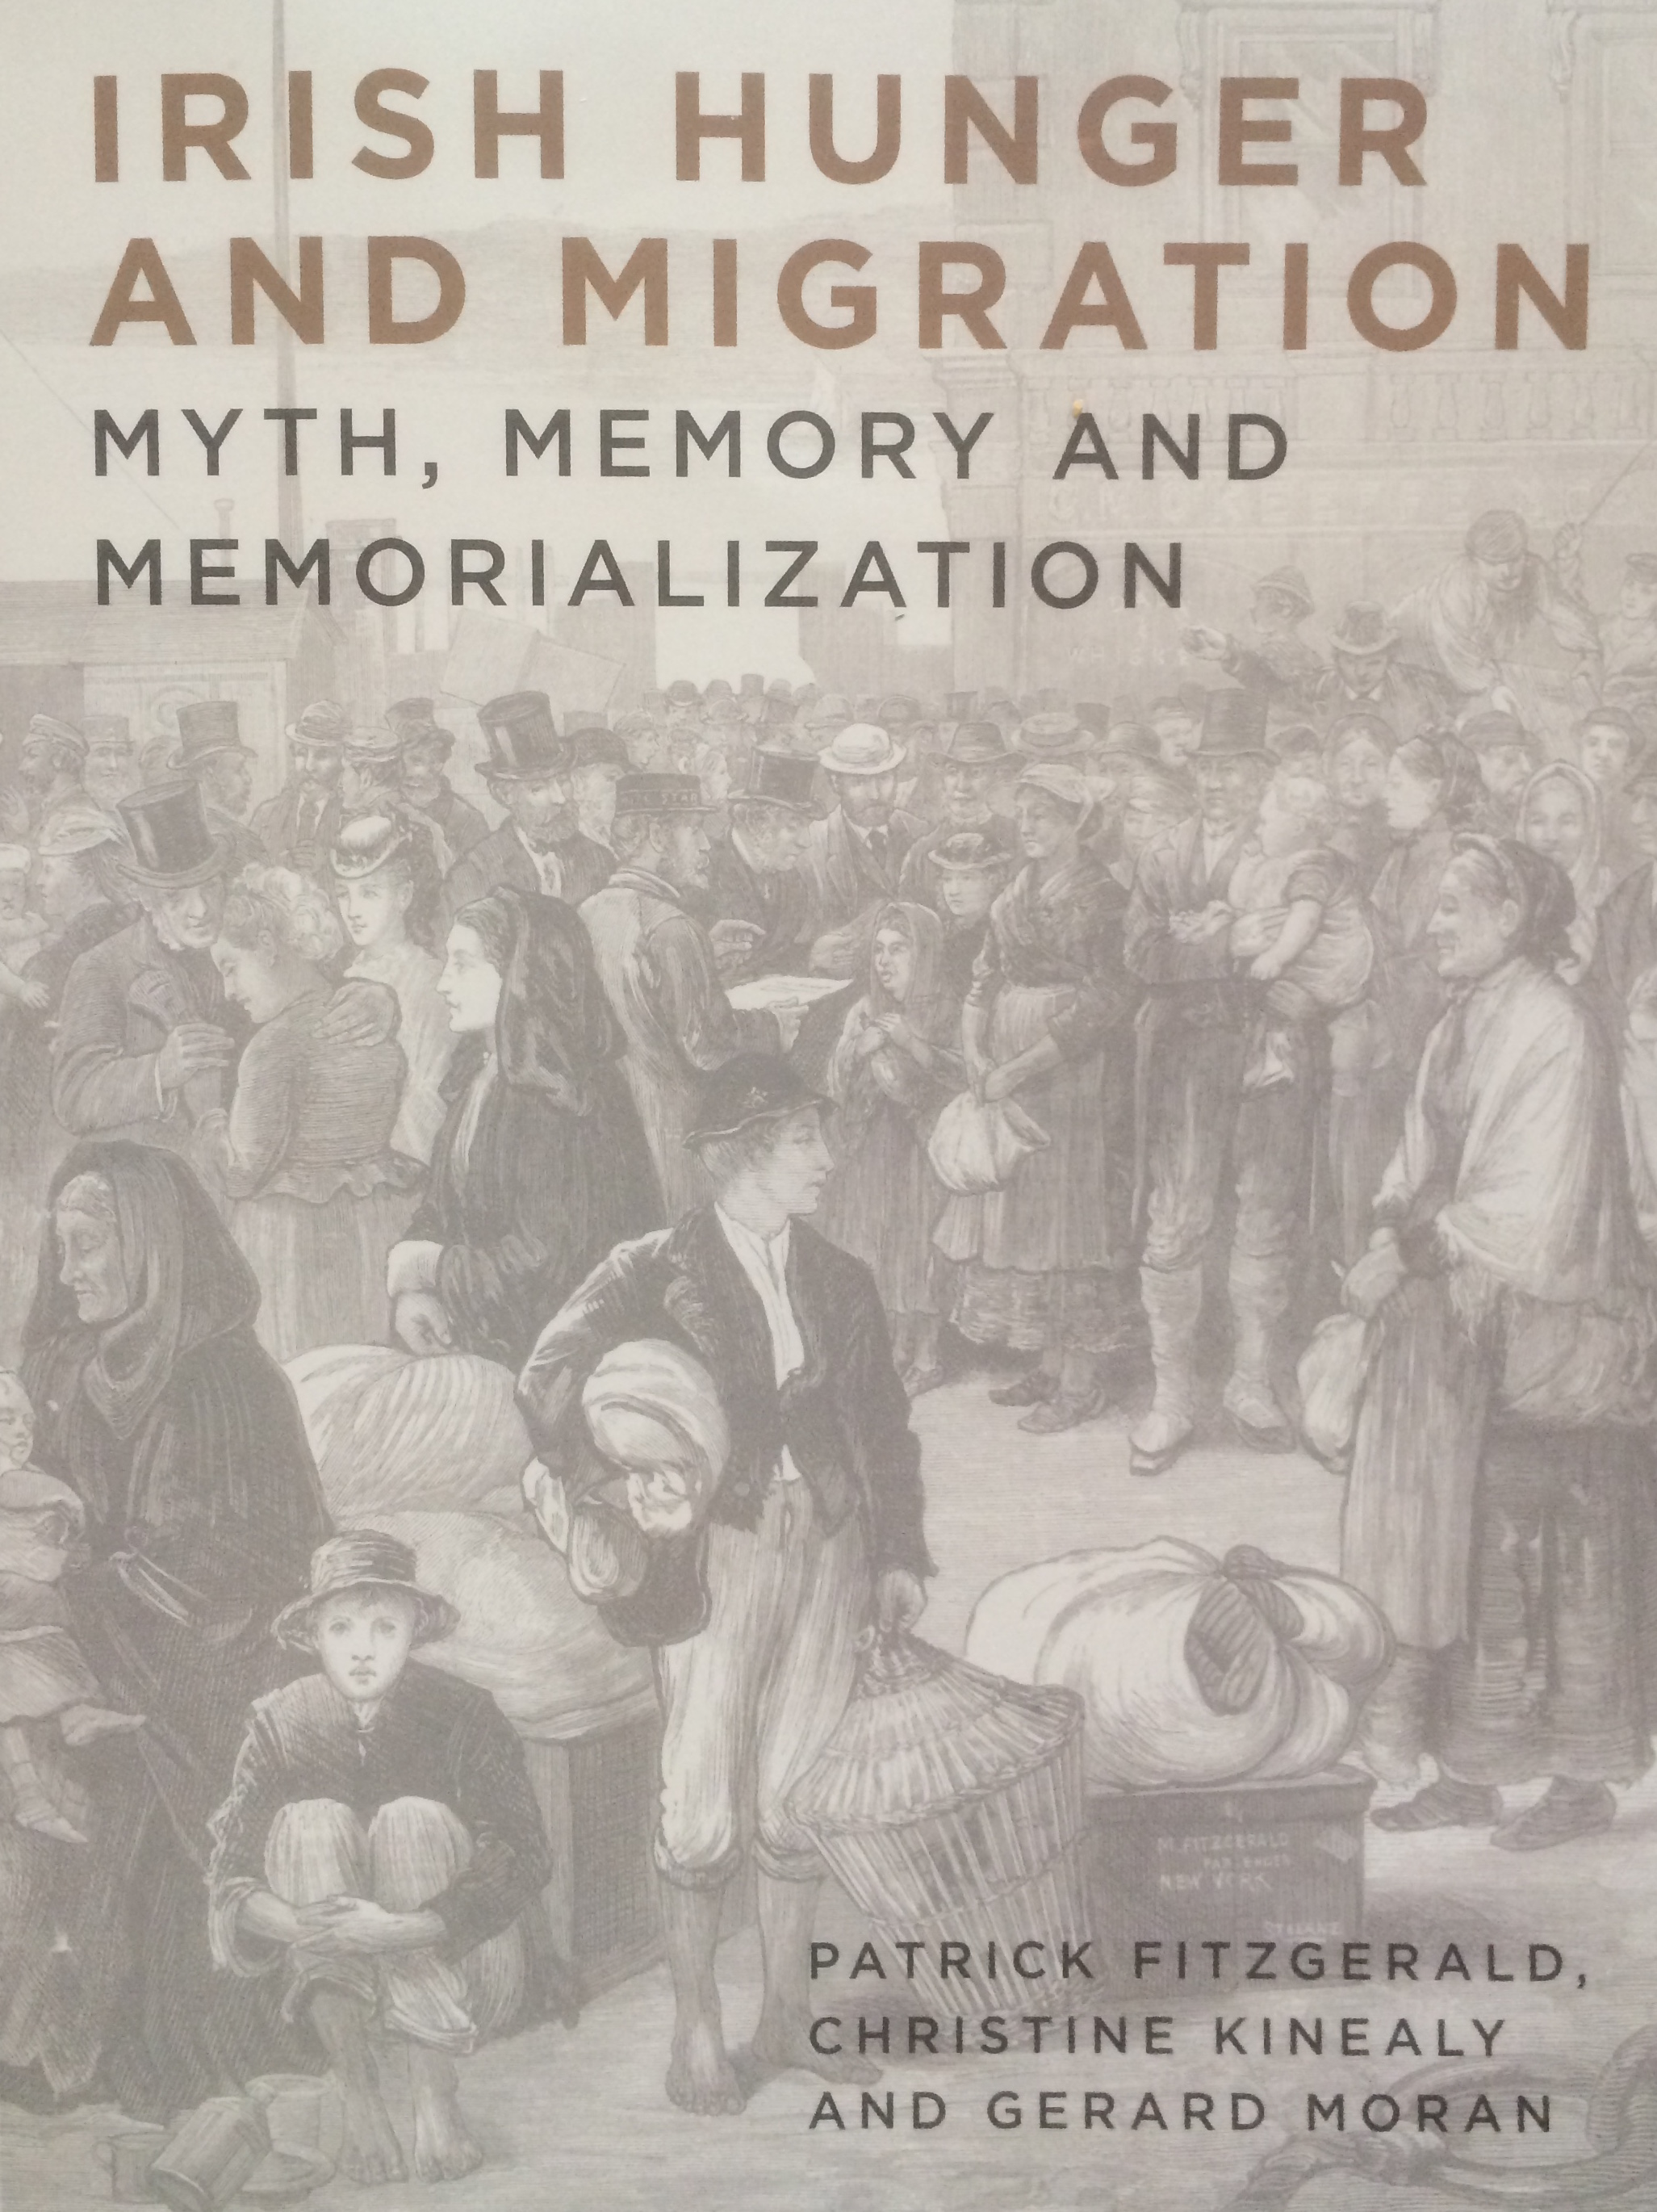 Irish Hunger and Migration: Myth, Memory and Memorialization